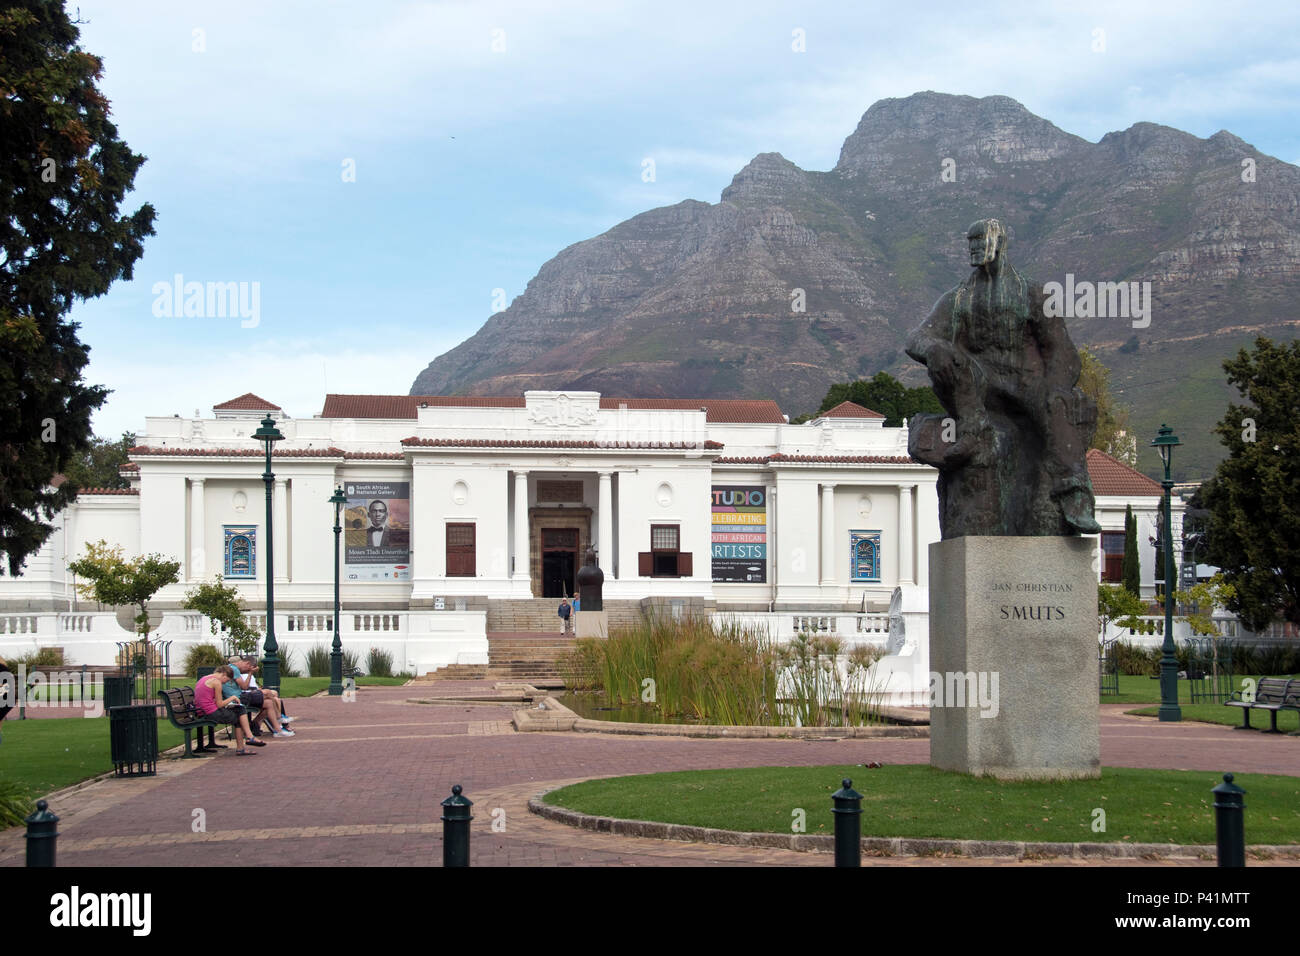 A modern statue of Jan Smuts stands outside the South African National Gallery, South Africa's premier art museum, in Cape Town, South Africa. - Stock Image